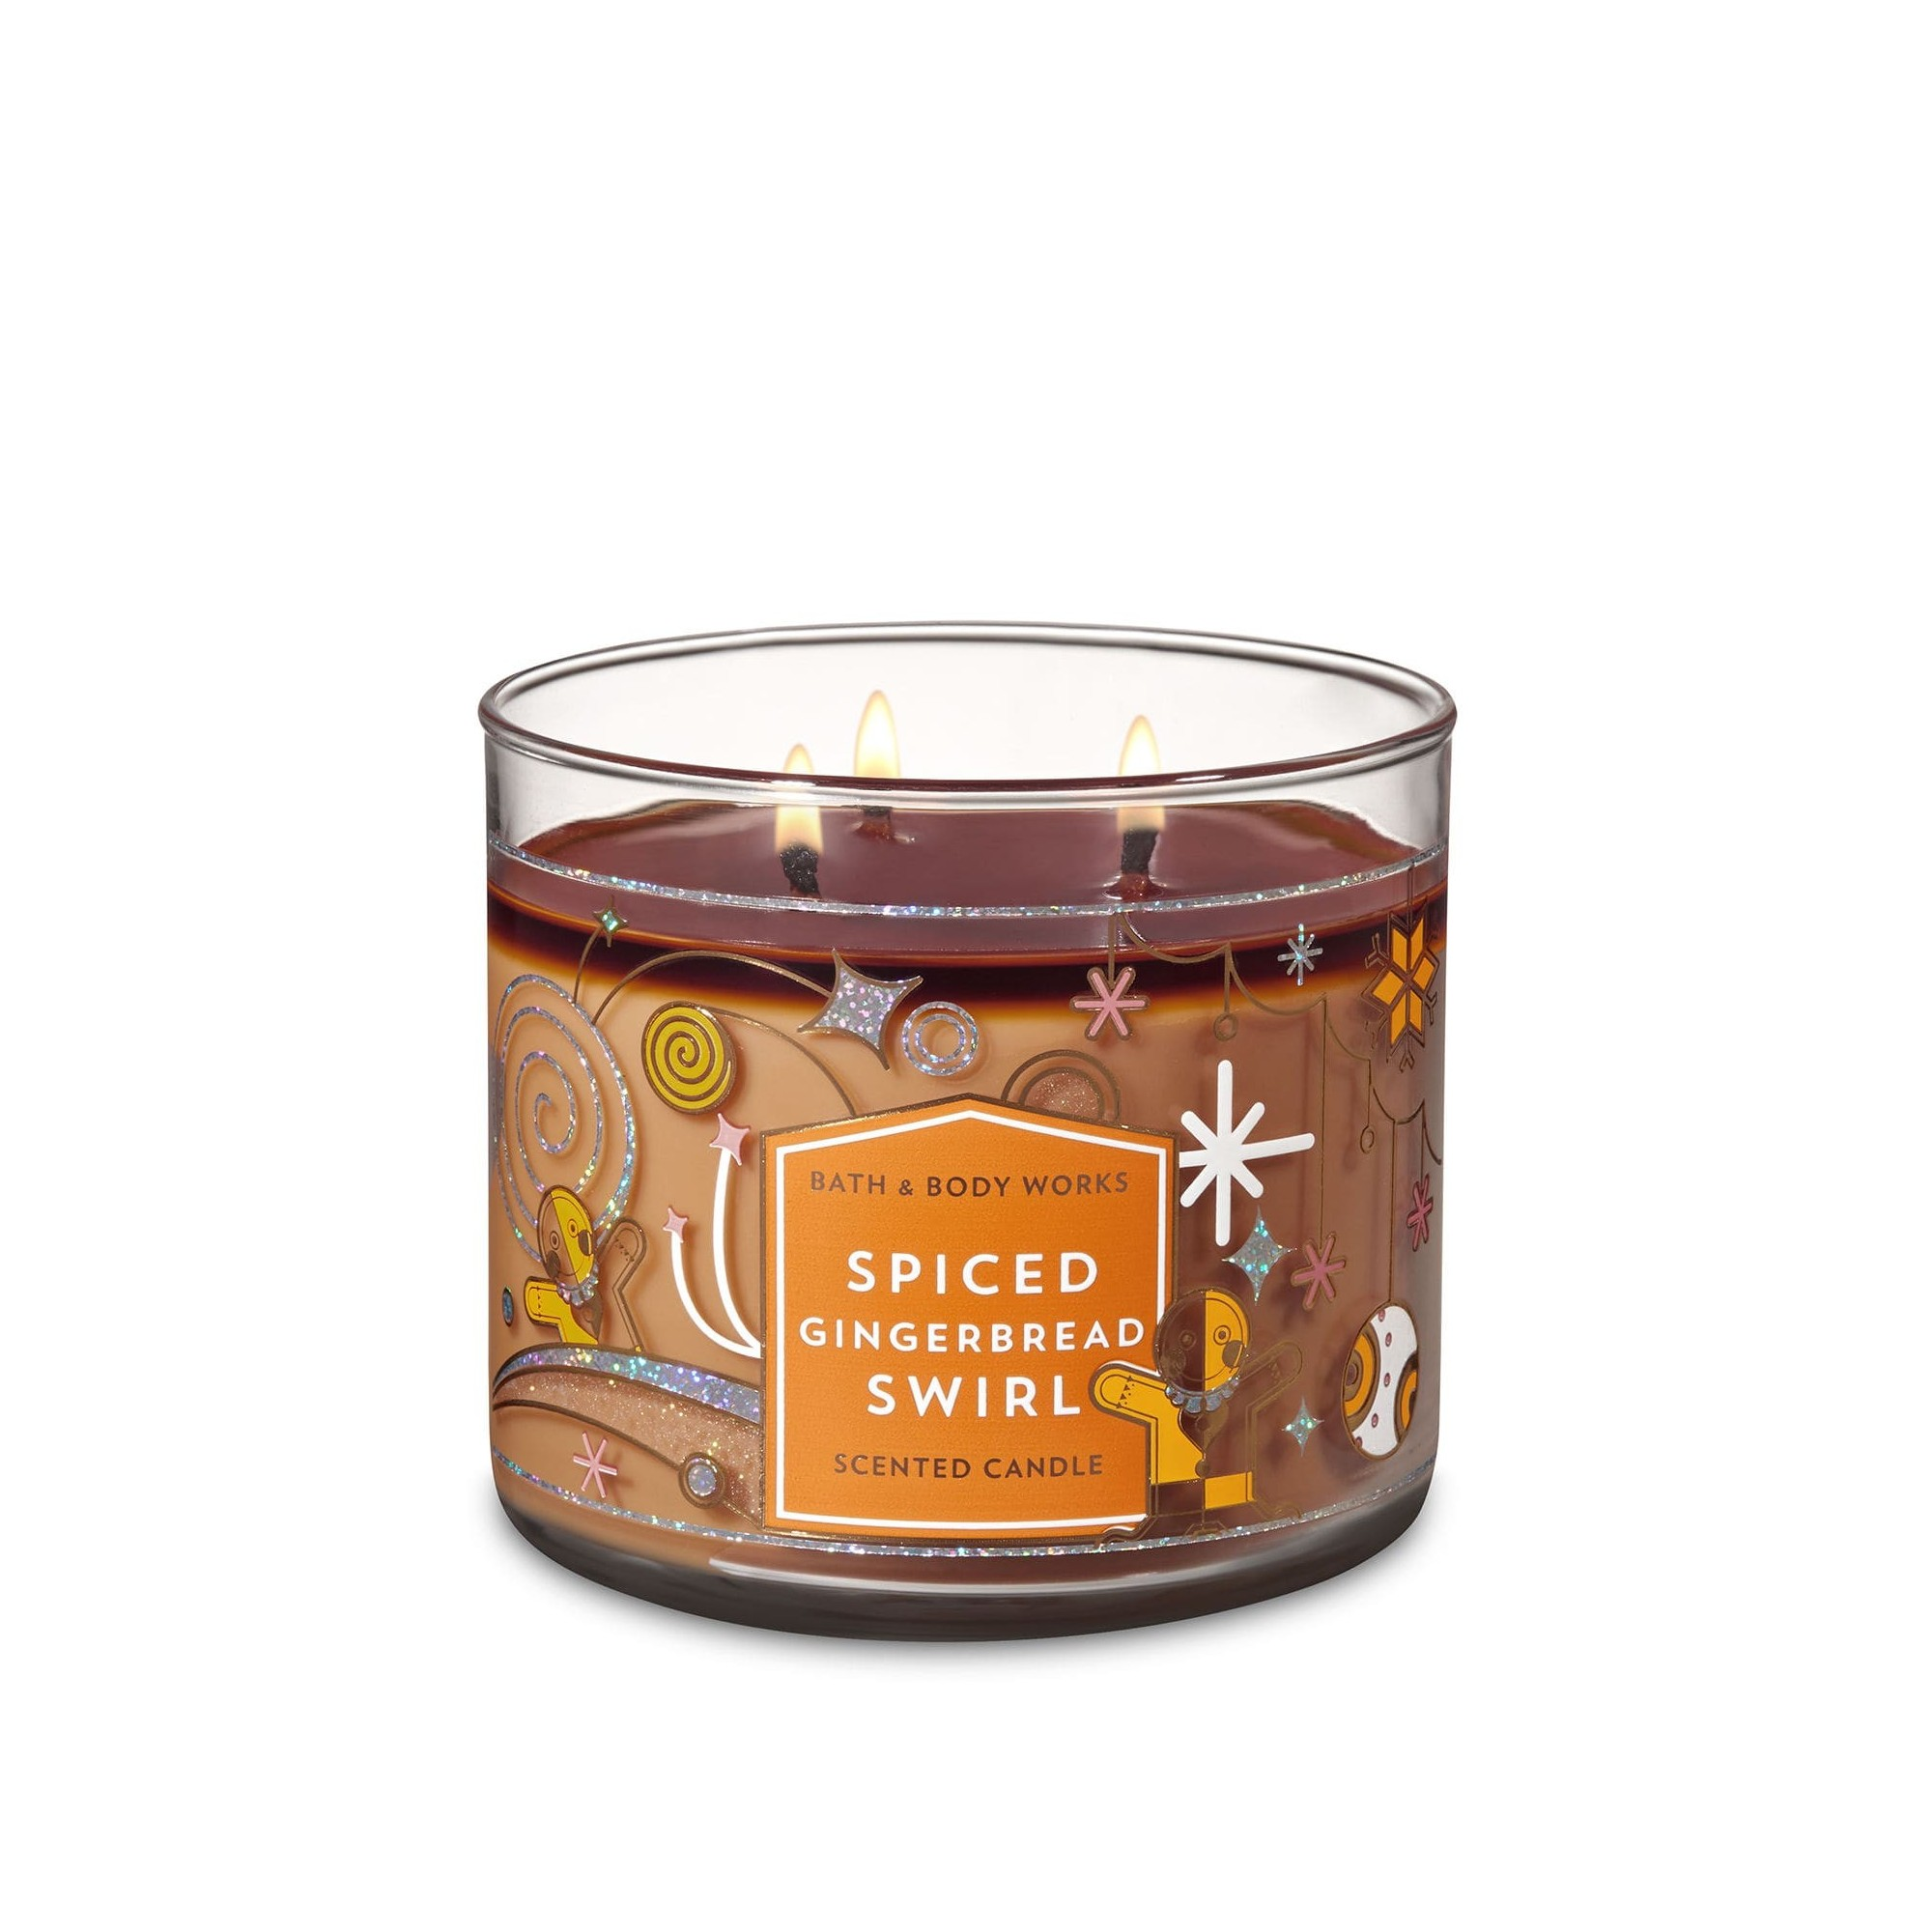 Bath & Body Works Spiced Gingerbread Swirl 3 Wick Scented Candle